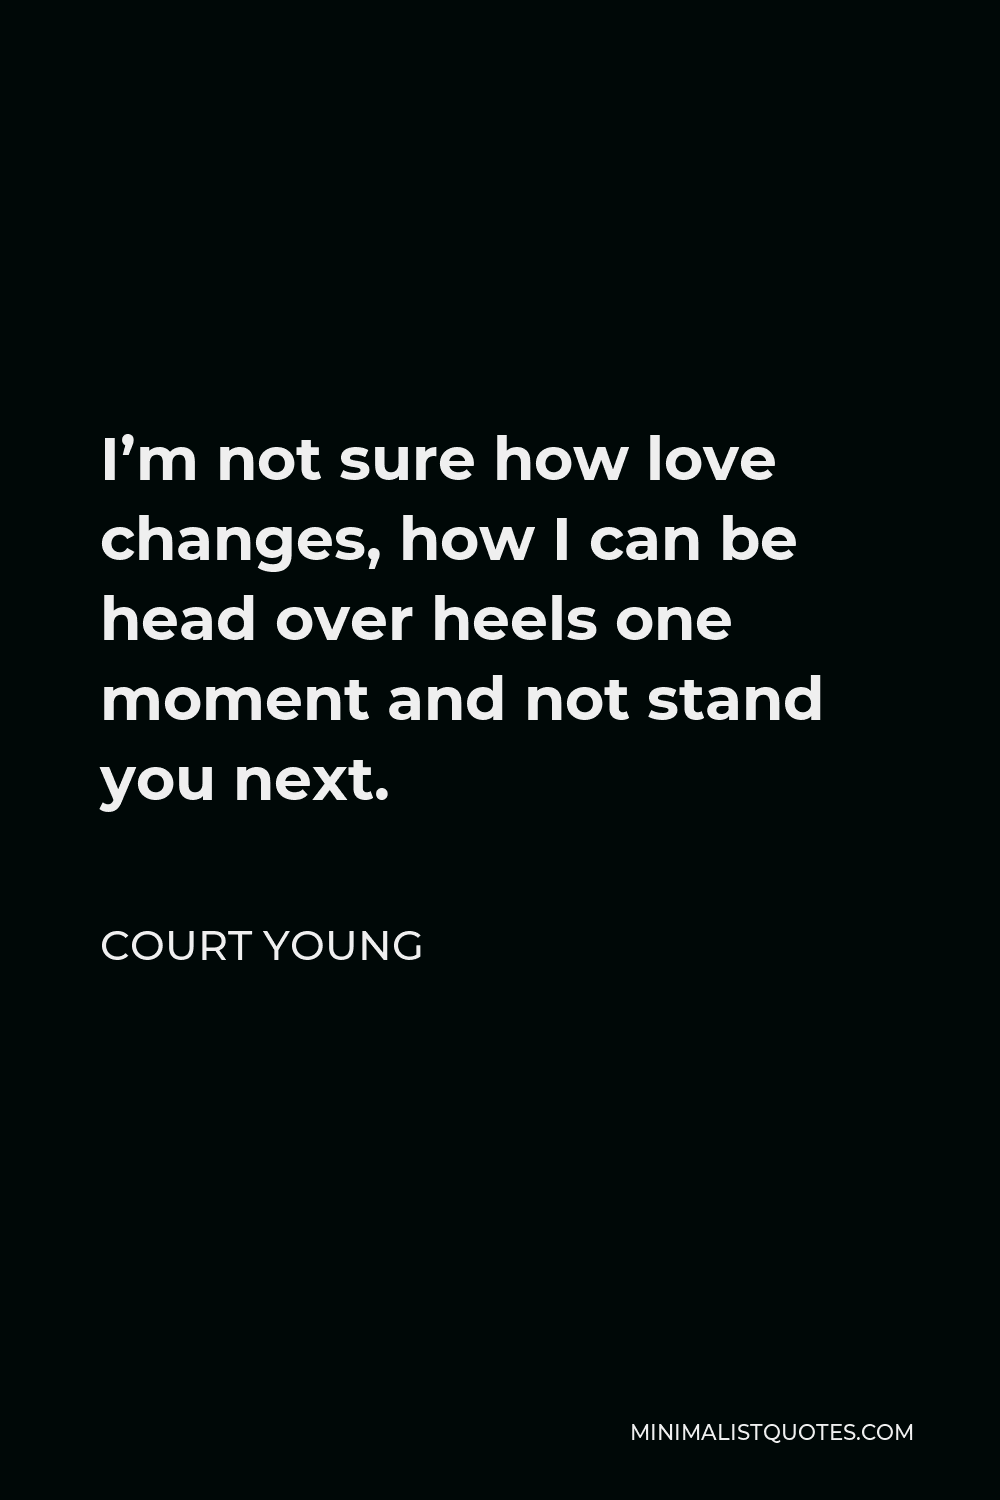 Court Young Quote - I'm not sure how love changes, how I can be head over heels one moment and not stand you next.